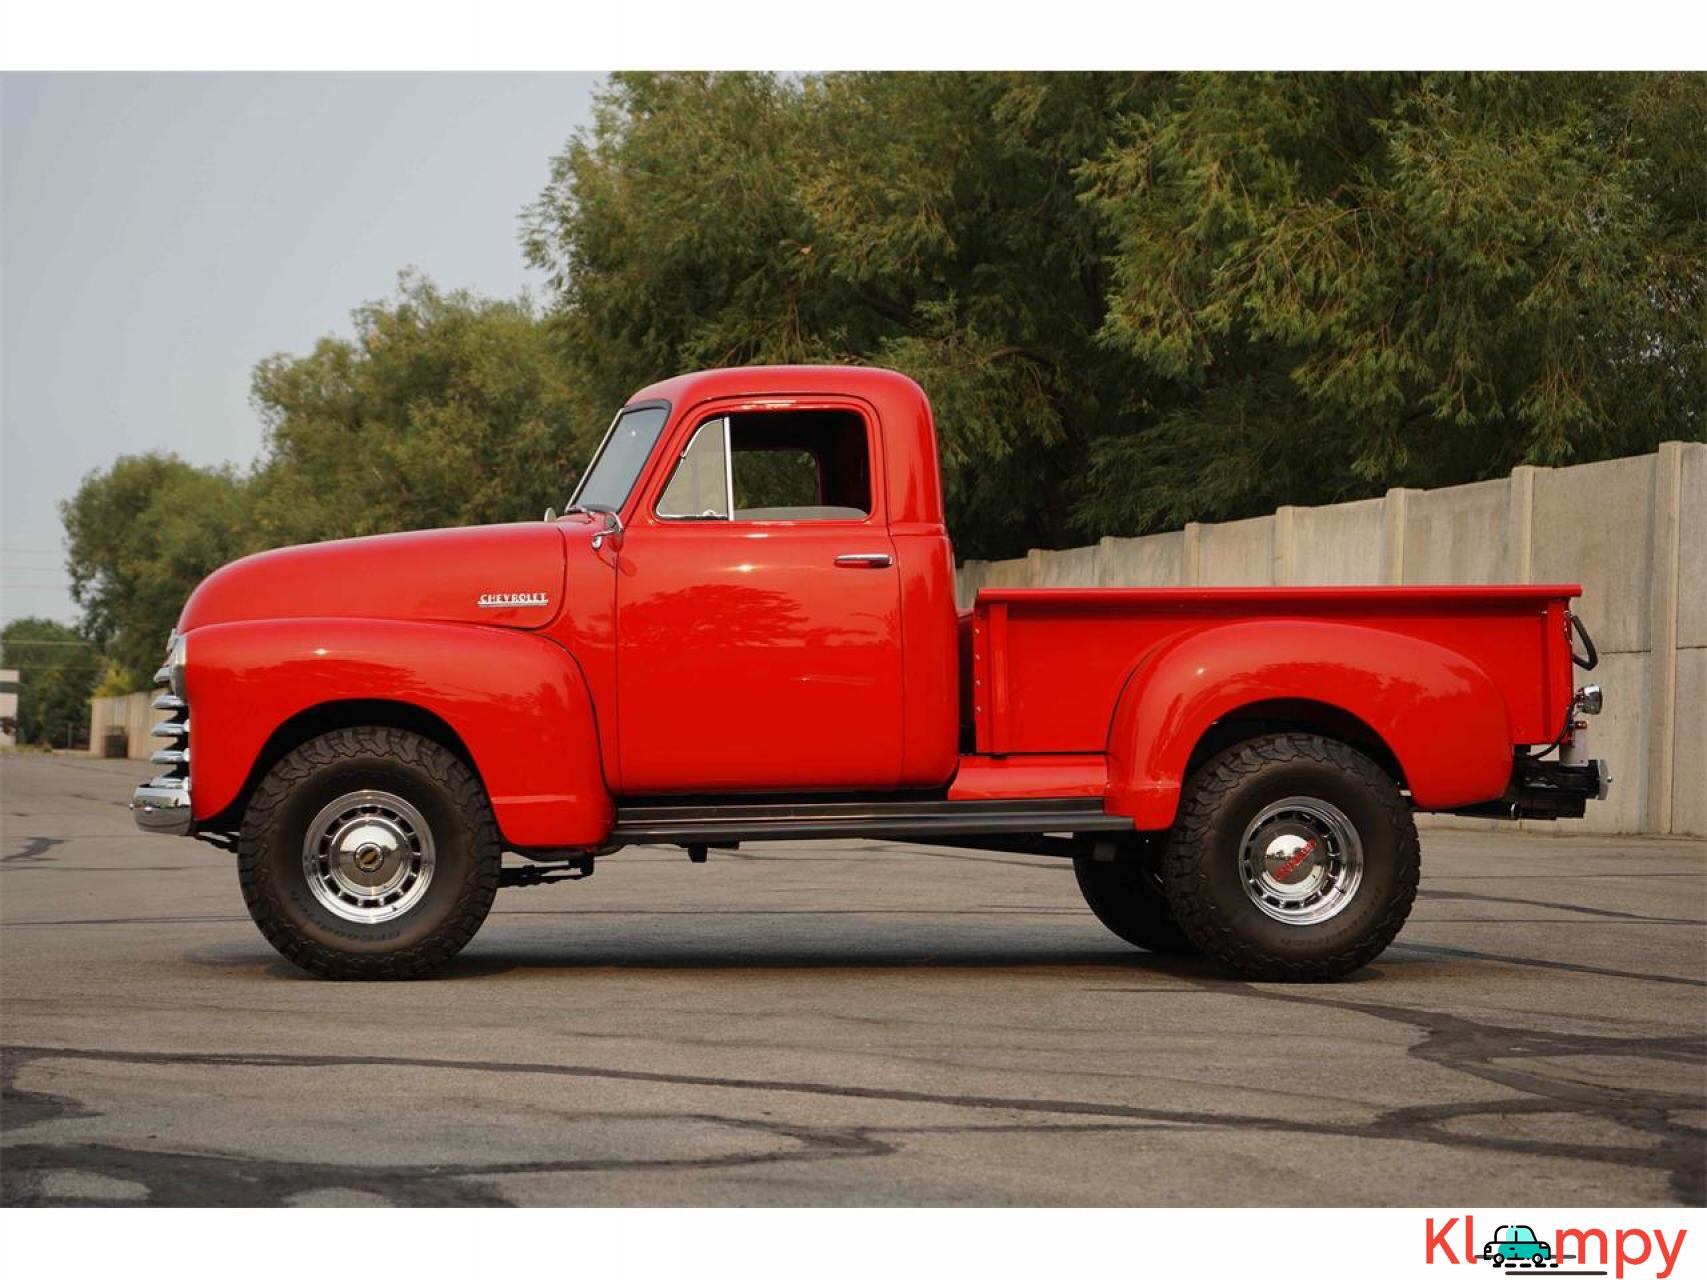 1951 Chevrolet 3100 350 V8 with a B&M Supercharger - 3/17